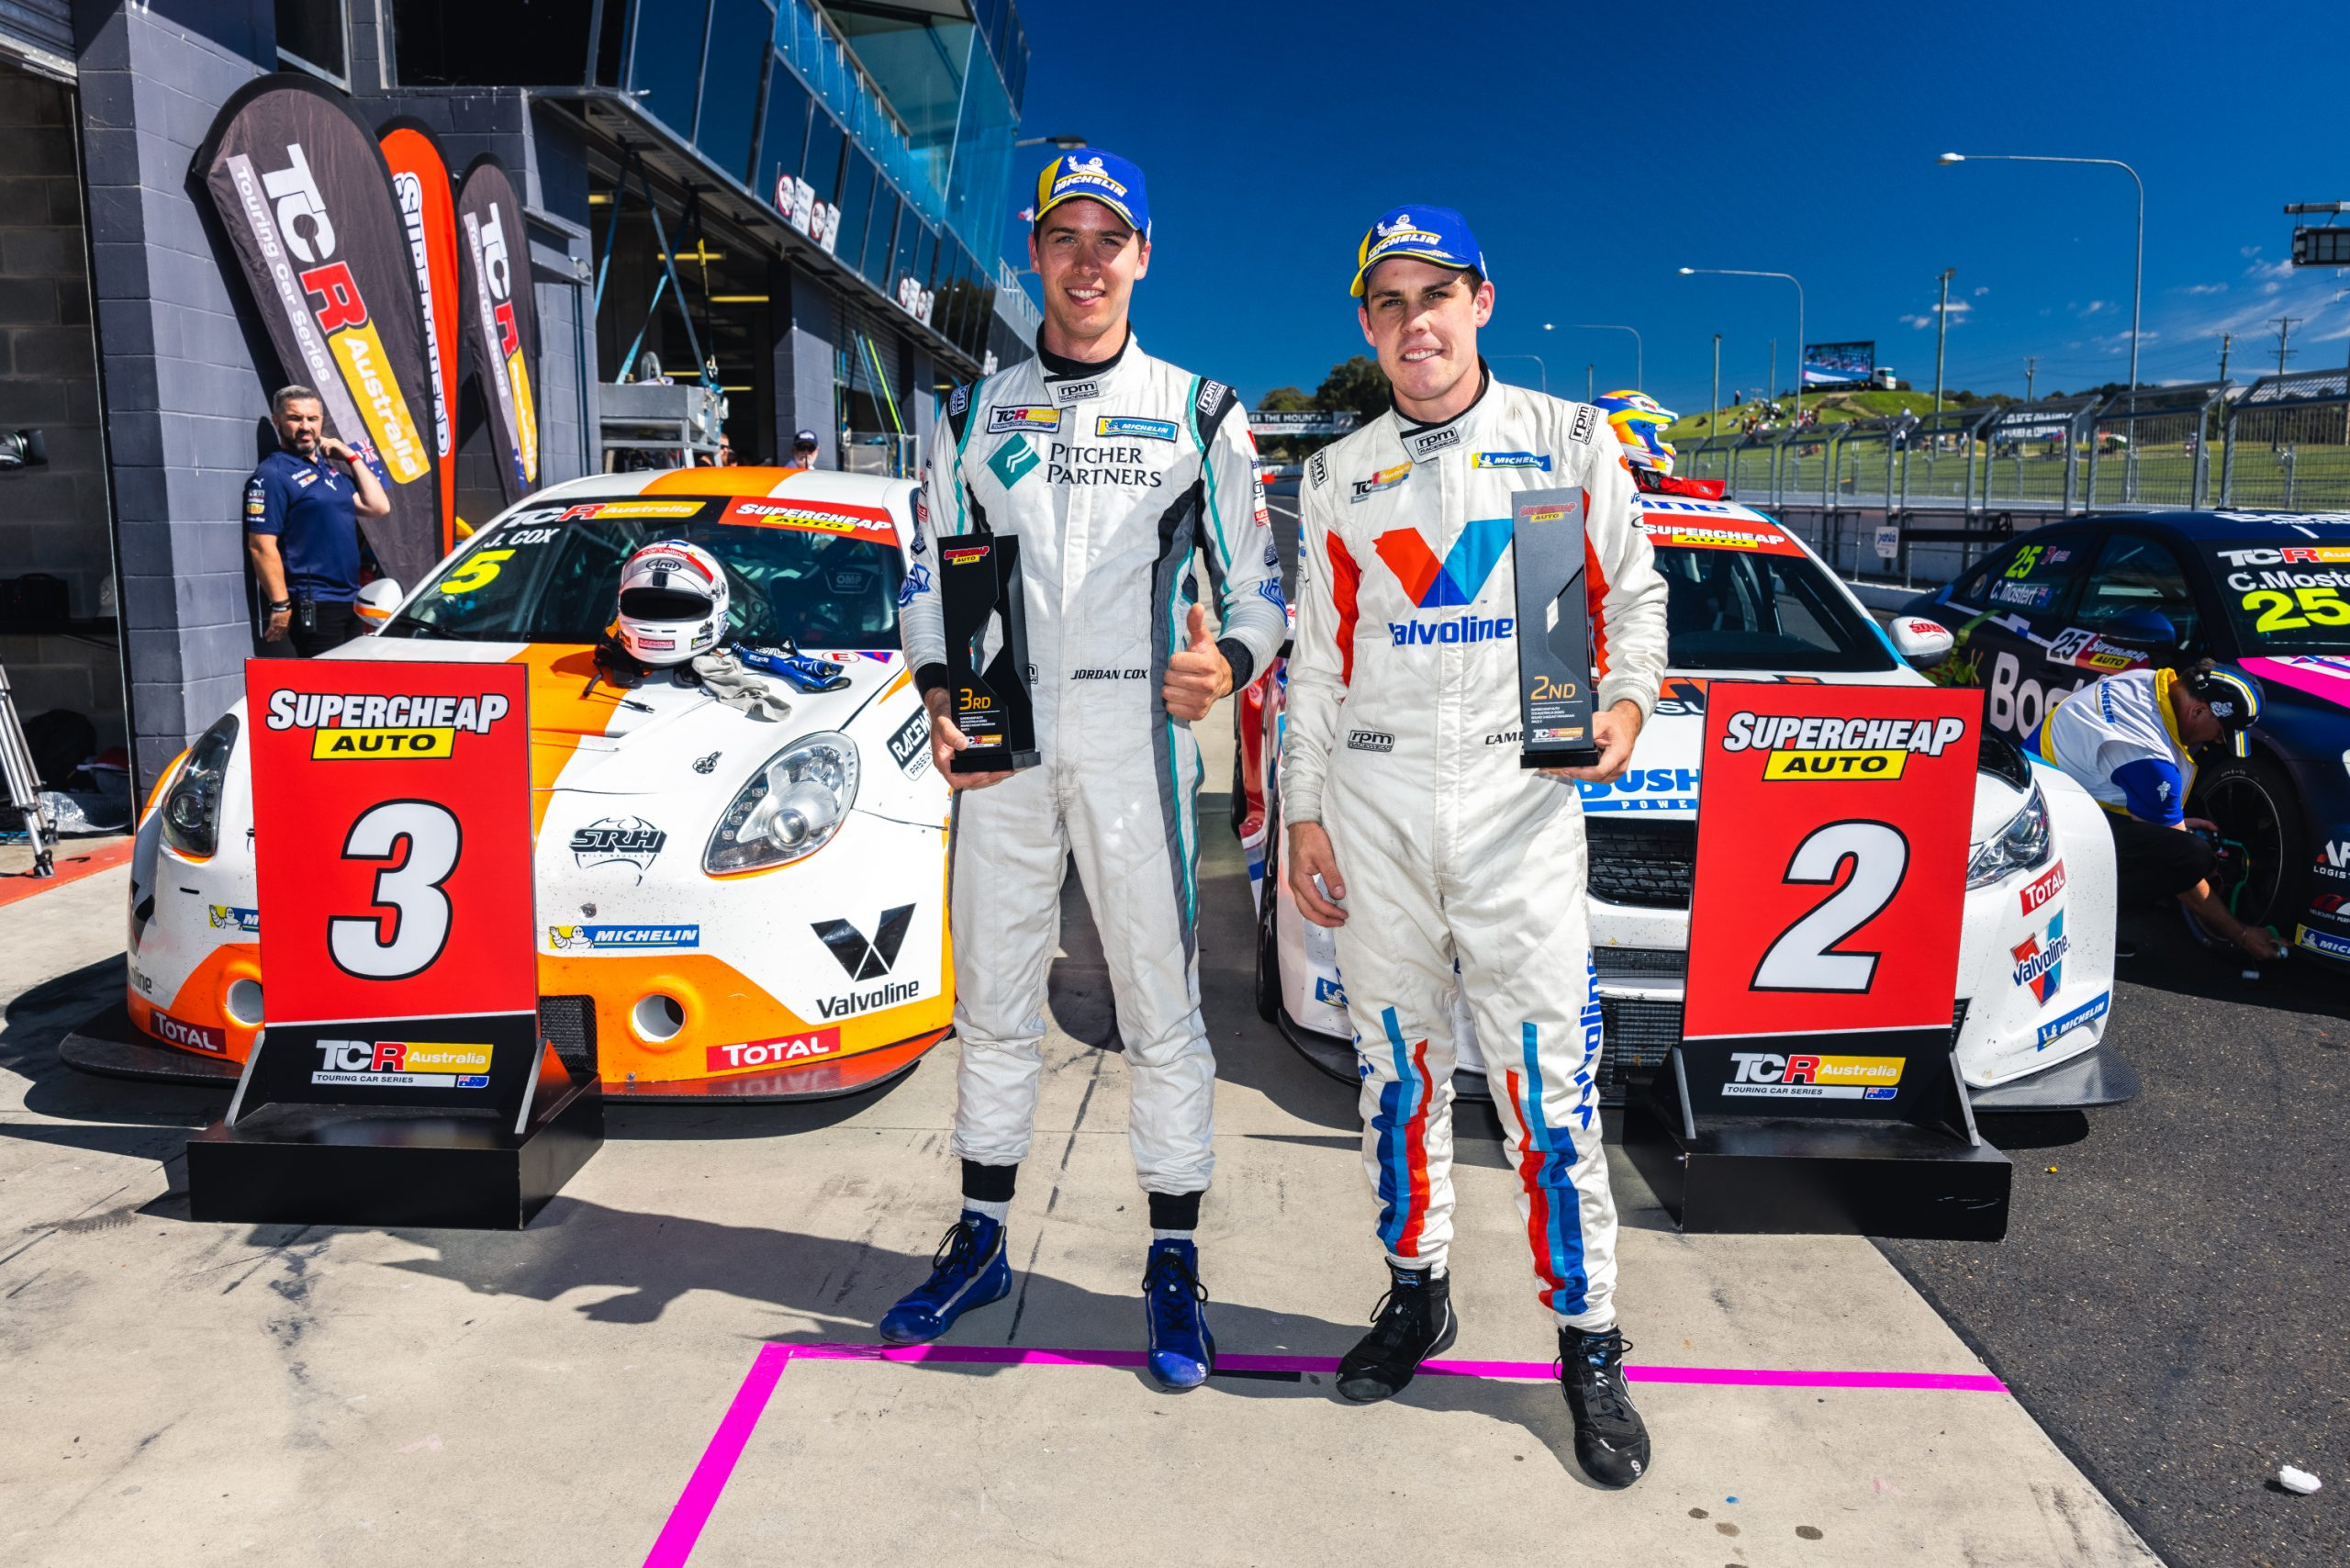 Double podium in final TCR race at Bathurst